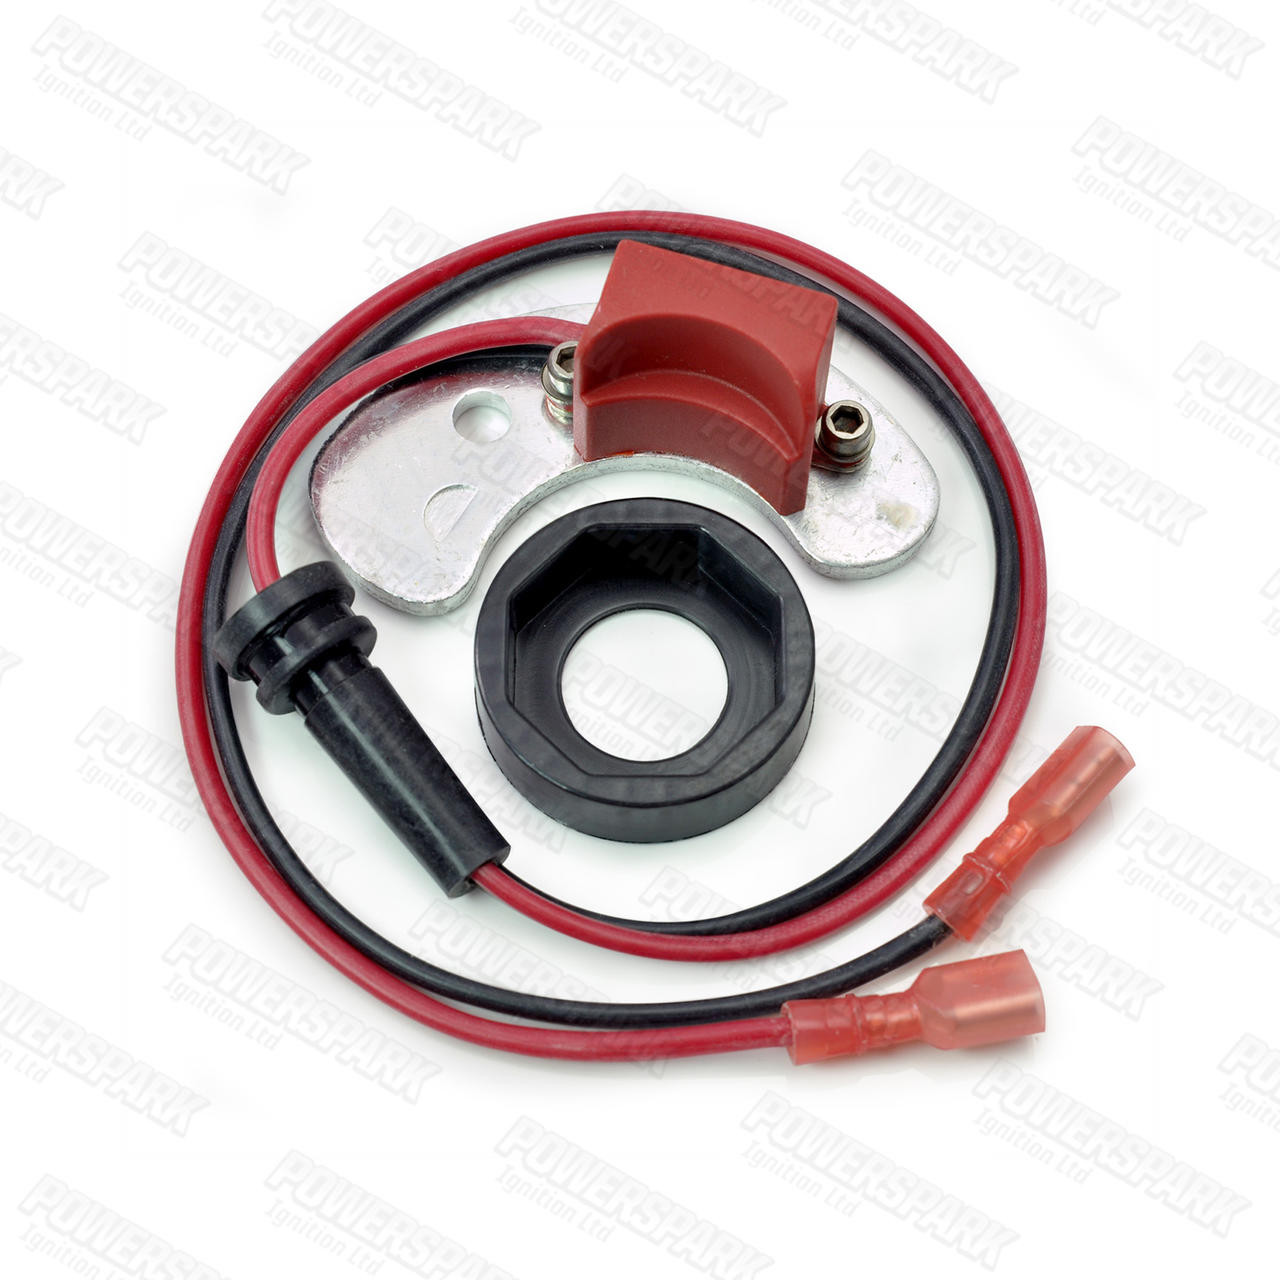 Powerspark Powerspark Electronic Ignition Kit for Lucas 35D Distributor K3x and R5